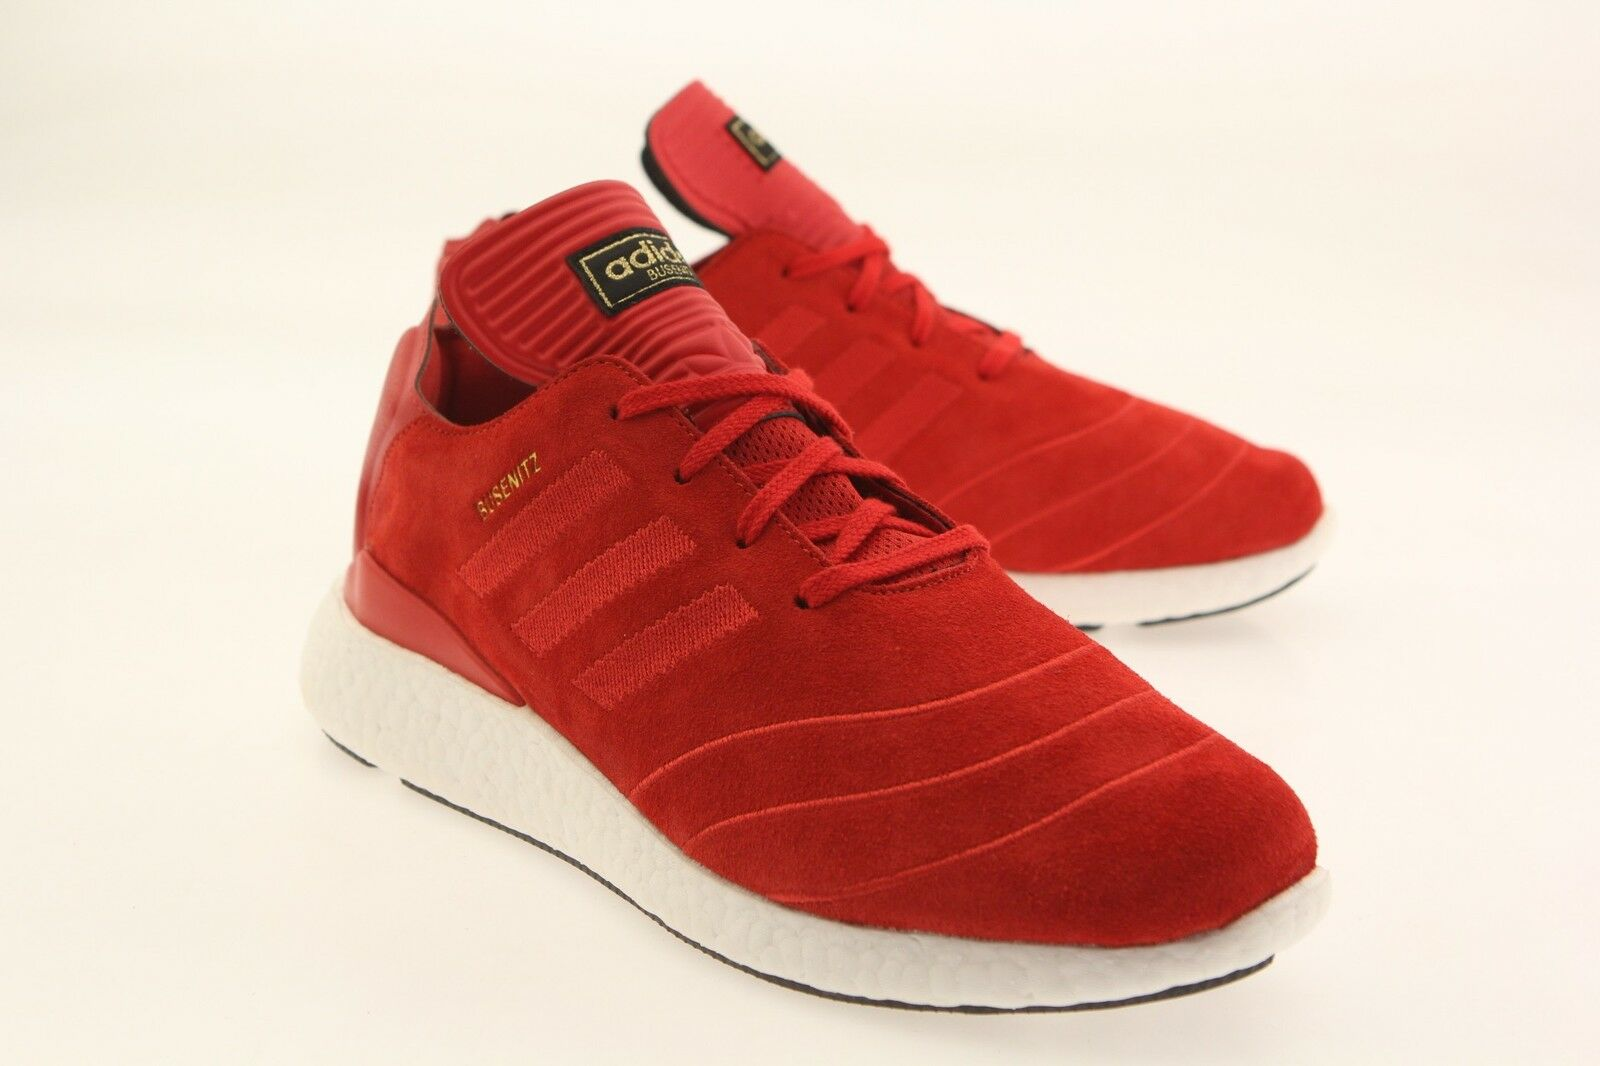 Adidas Men Busenitz Pure Boost rot rot rot scarlet Weiß F37885 a0041c